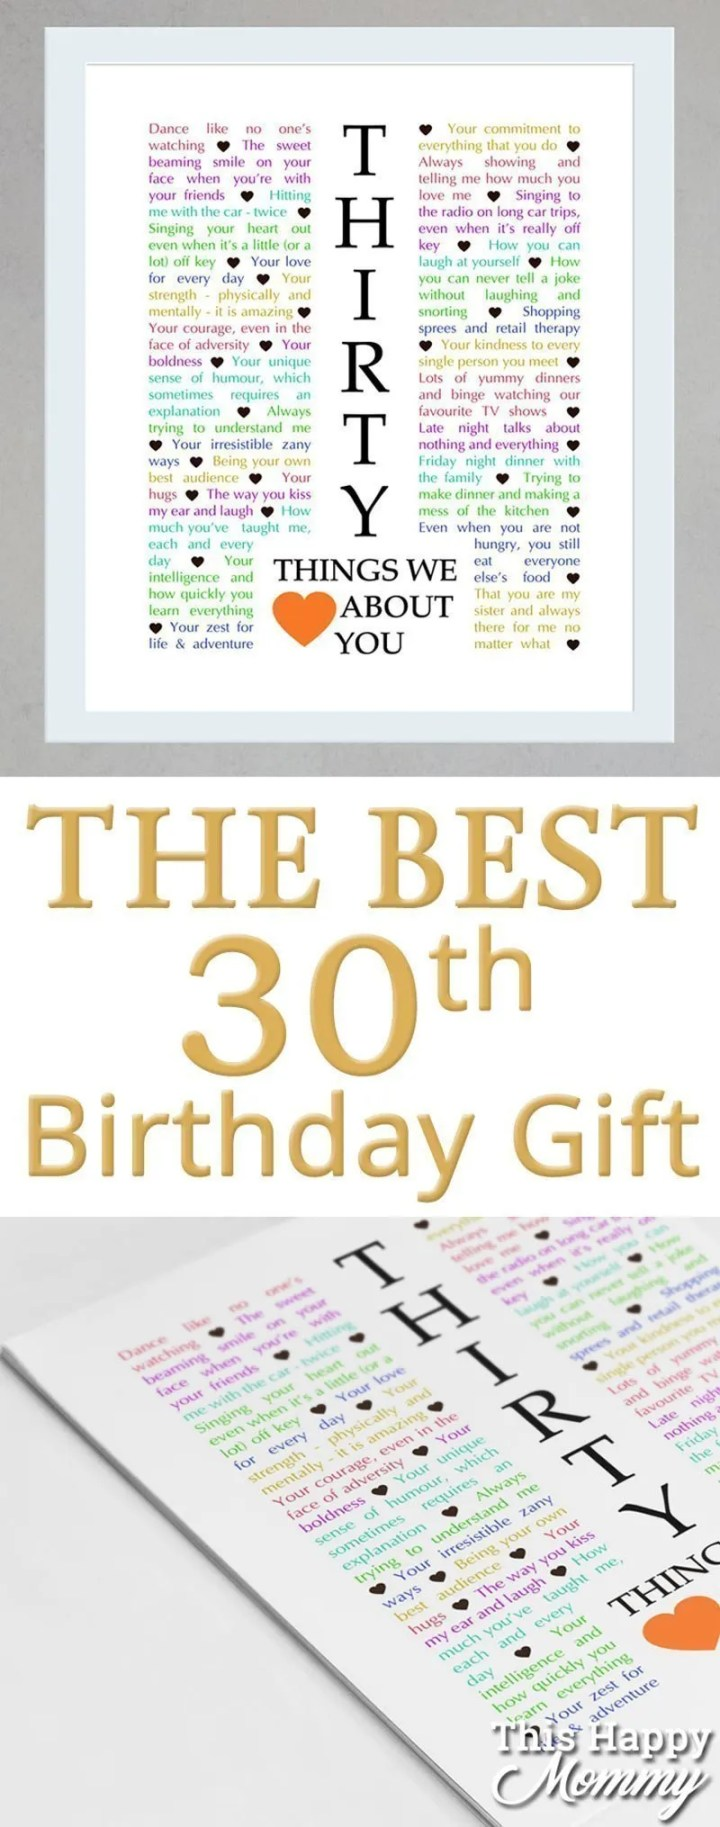 30 Things We {Love} About You -- Celebrate turning 30 years old with a personalized, heartfelt gift.30 Things We {Love} About You can be the perfect gift for a milestone birthday or anniversary. #30birthday #30anniversary   thishappymommy.com